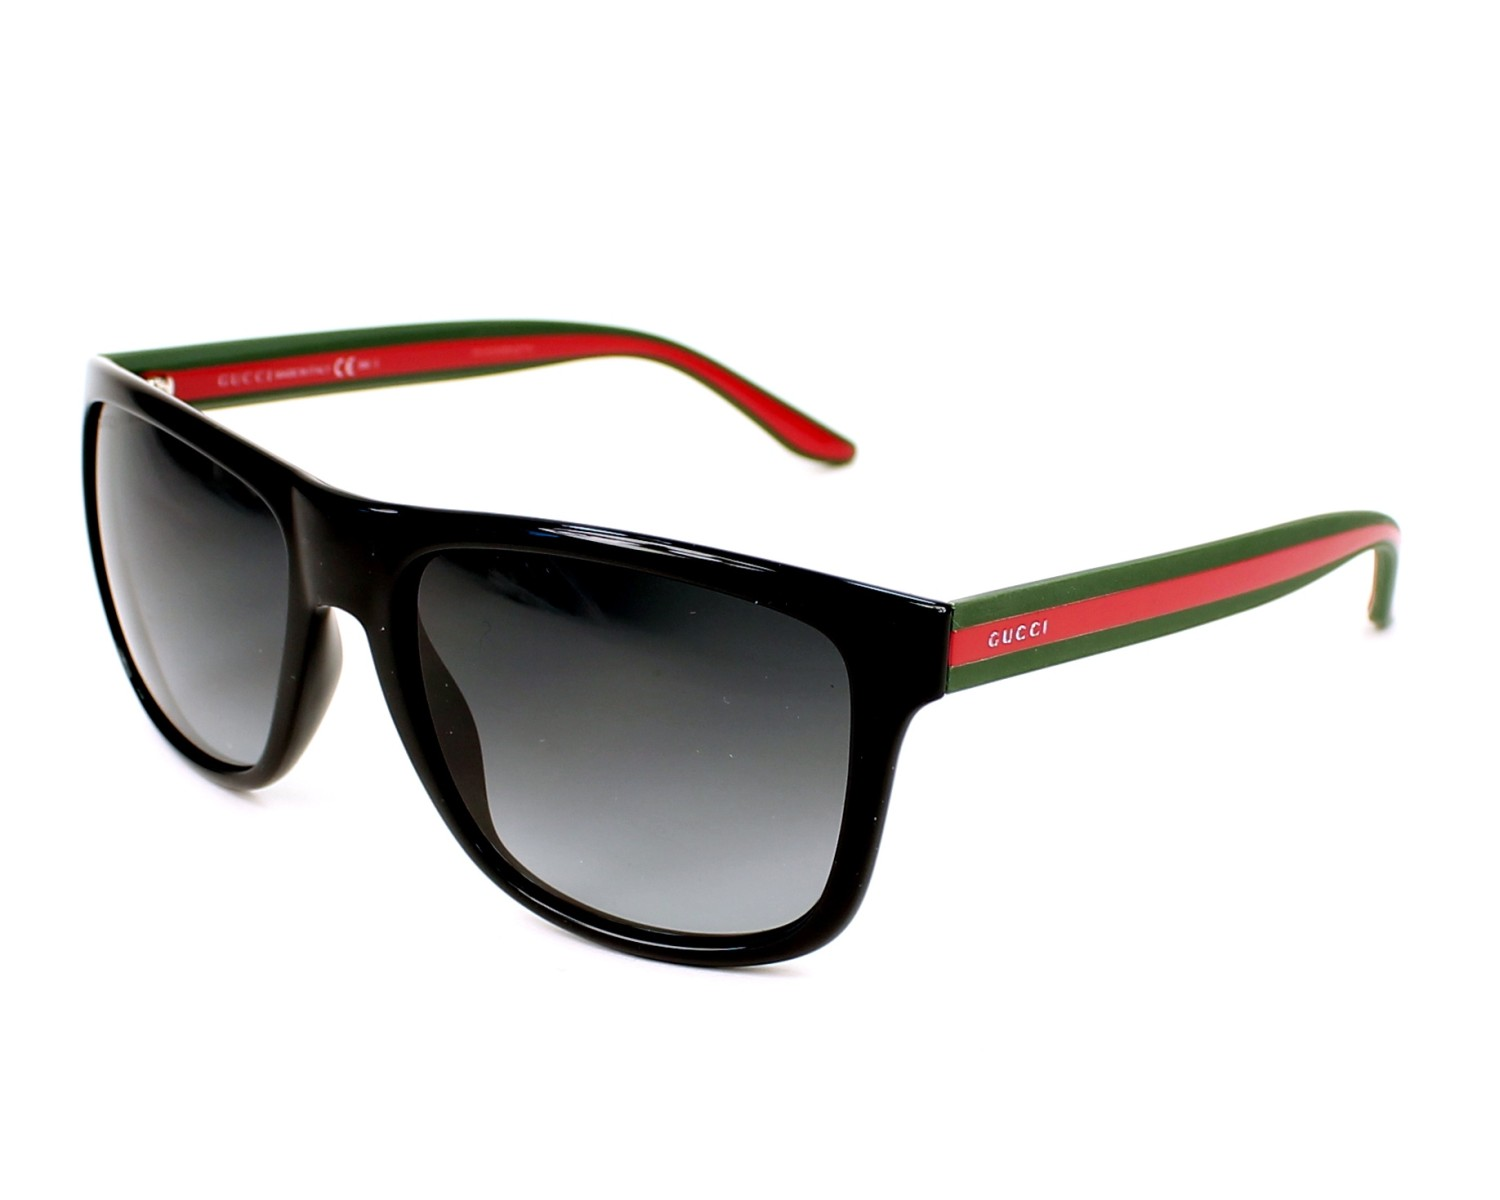 Gucci Sunglasses Gg 1118 S 51n 9o Buy Now And Save 0 Visio Net Co Uk